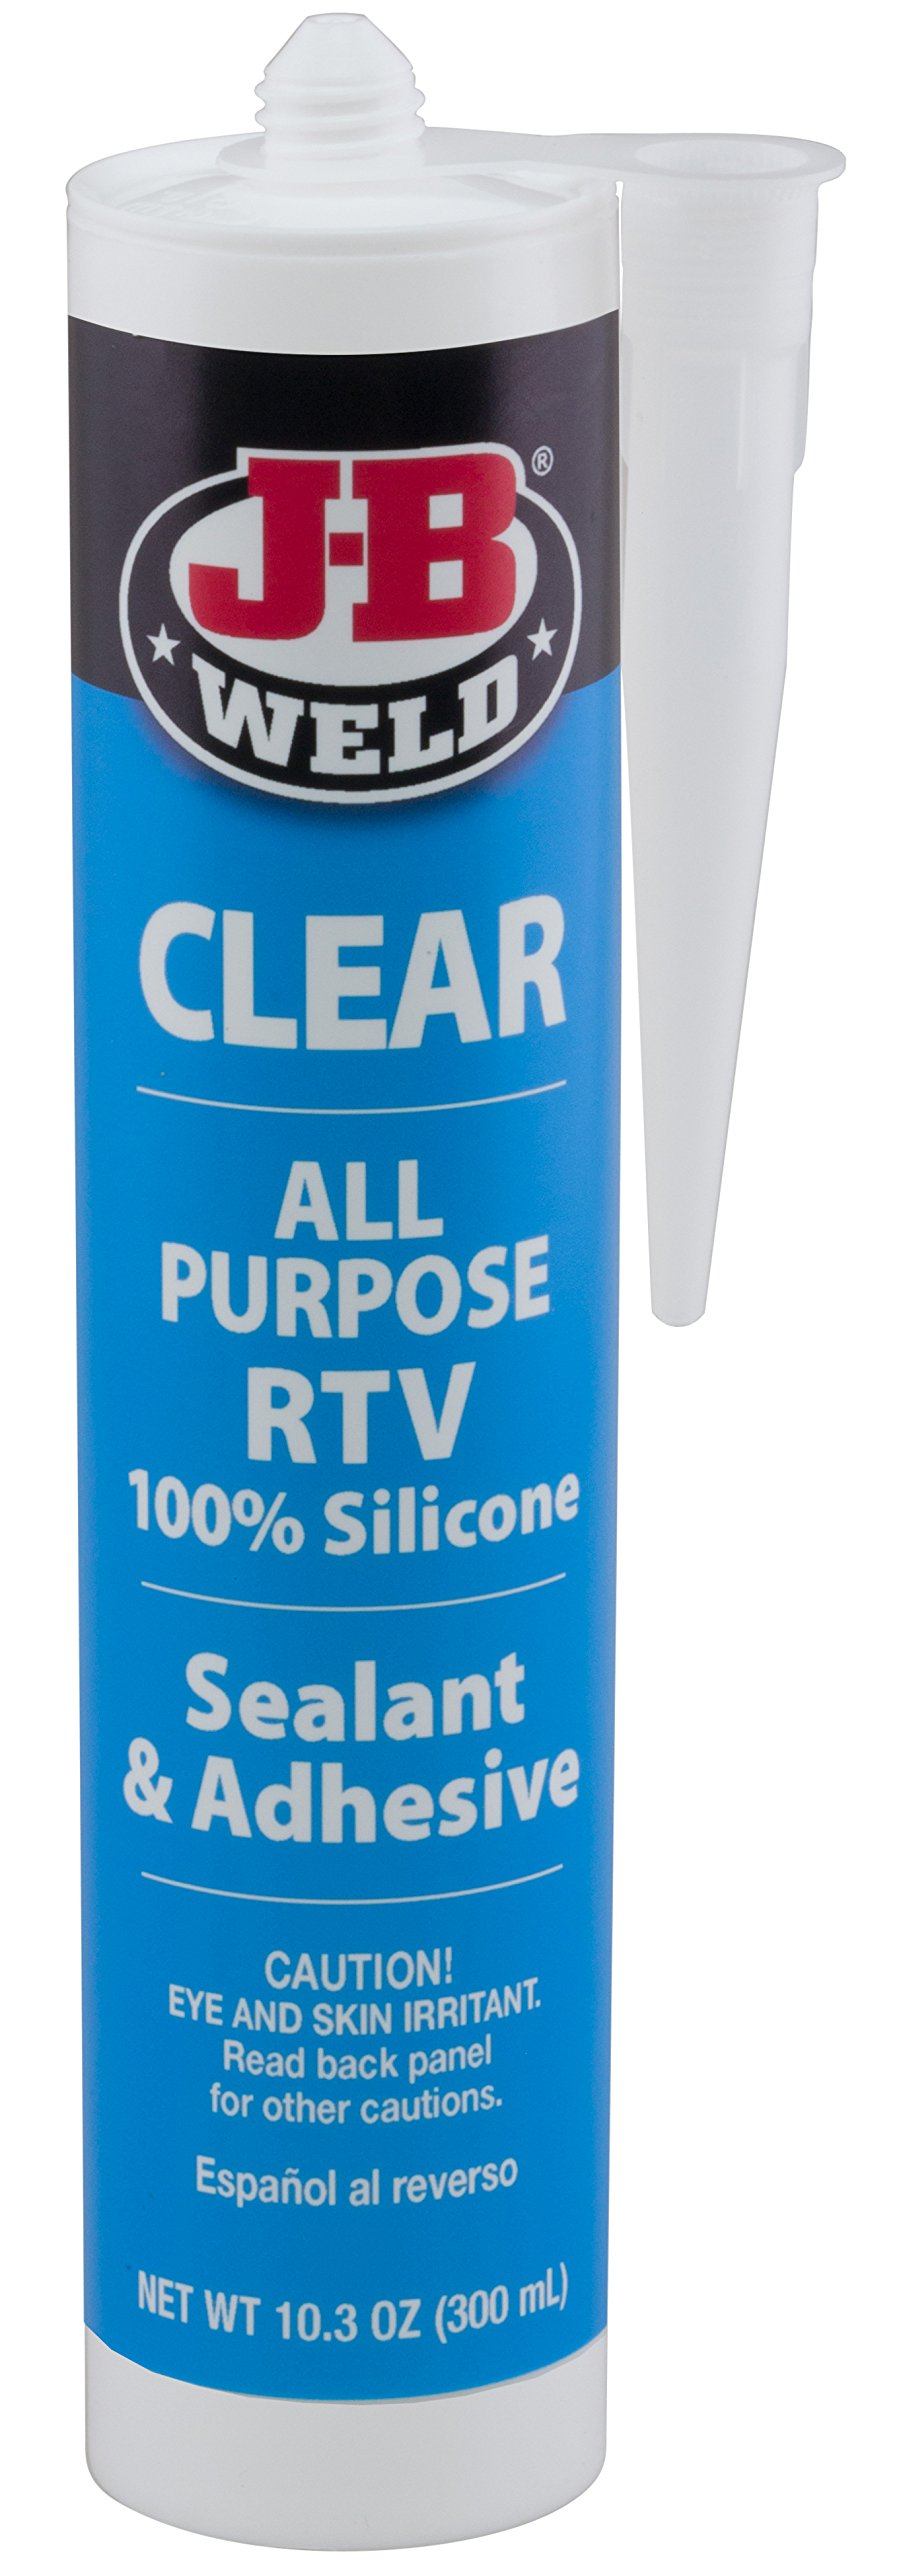 J-B Weld 31910 Clear All-Purpose RTV Silicone Sealant and Adhesive - 10.3 oz.